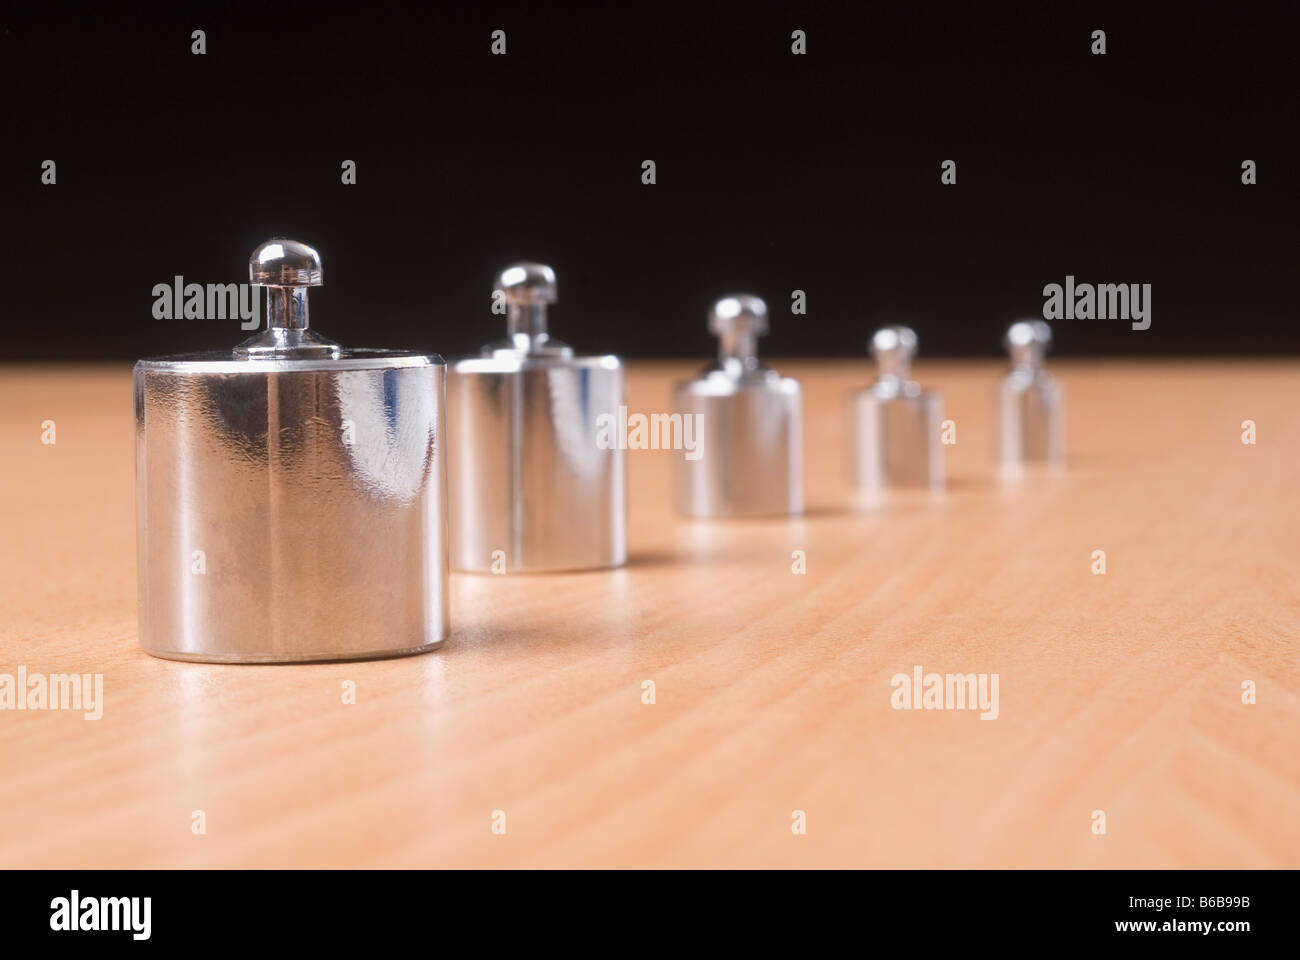 Weights in a row - Stock Image